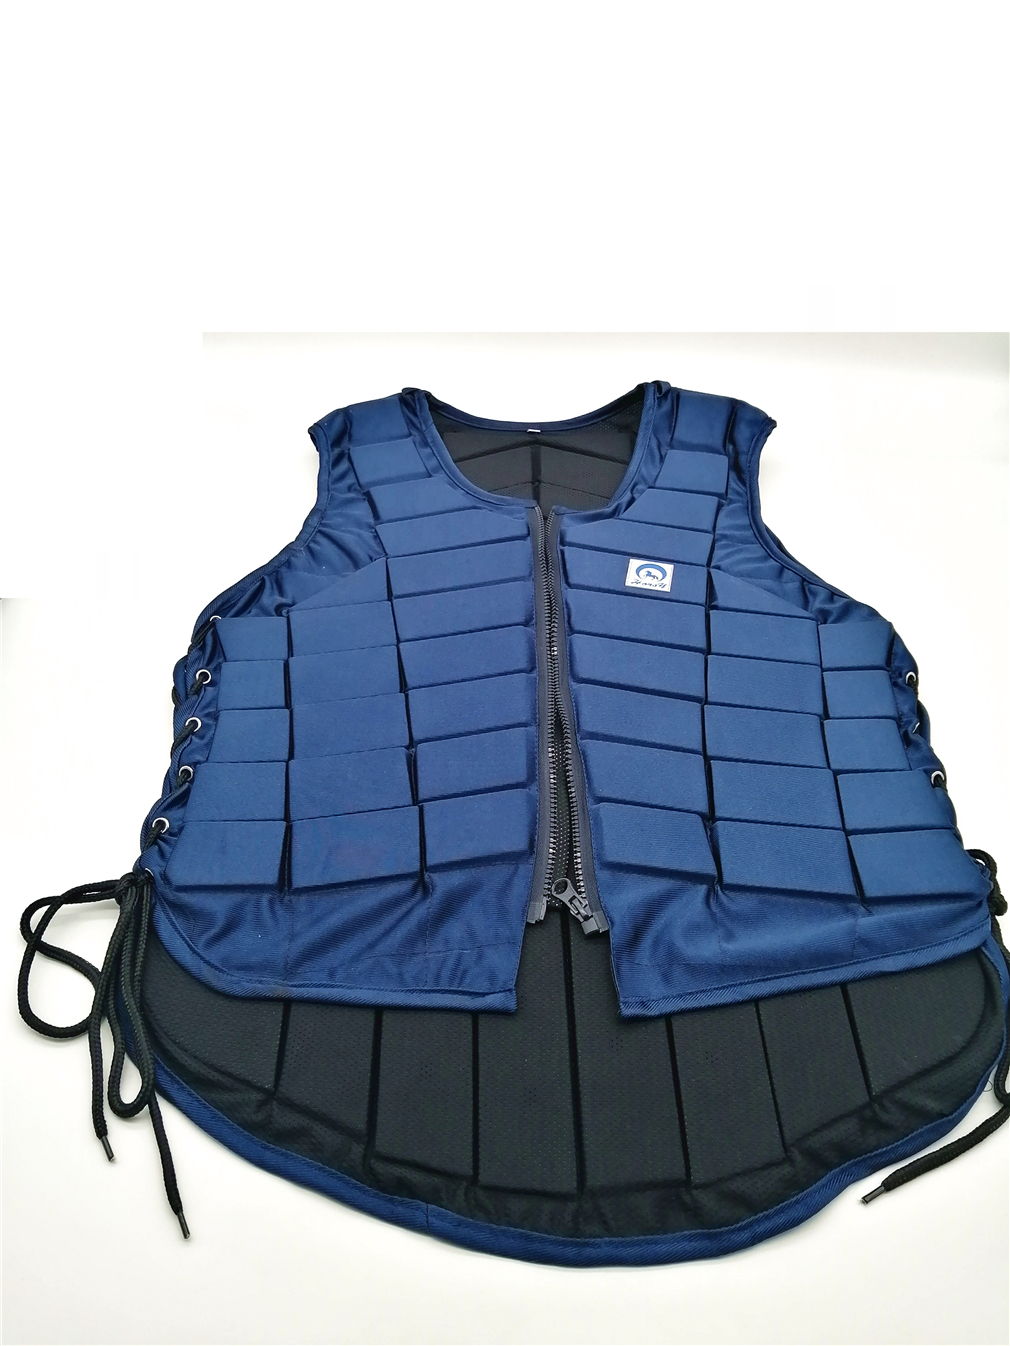 Adults Kids Equestrian Protective Horse Vest Horse Riding Vest Body Protector Safety Waistcoat Dark Blue